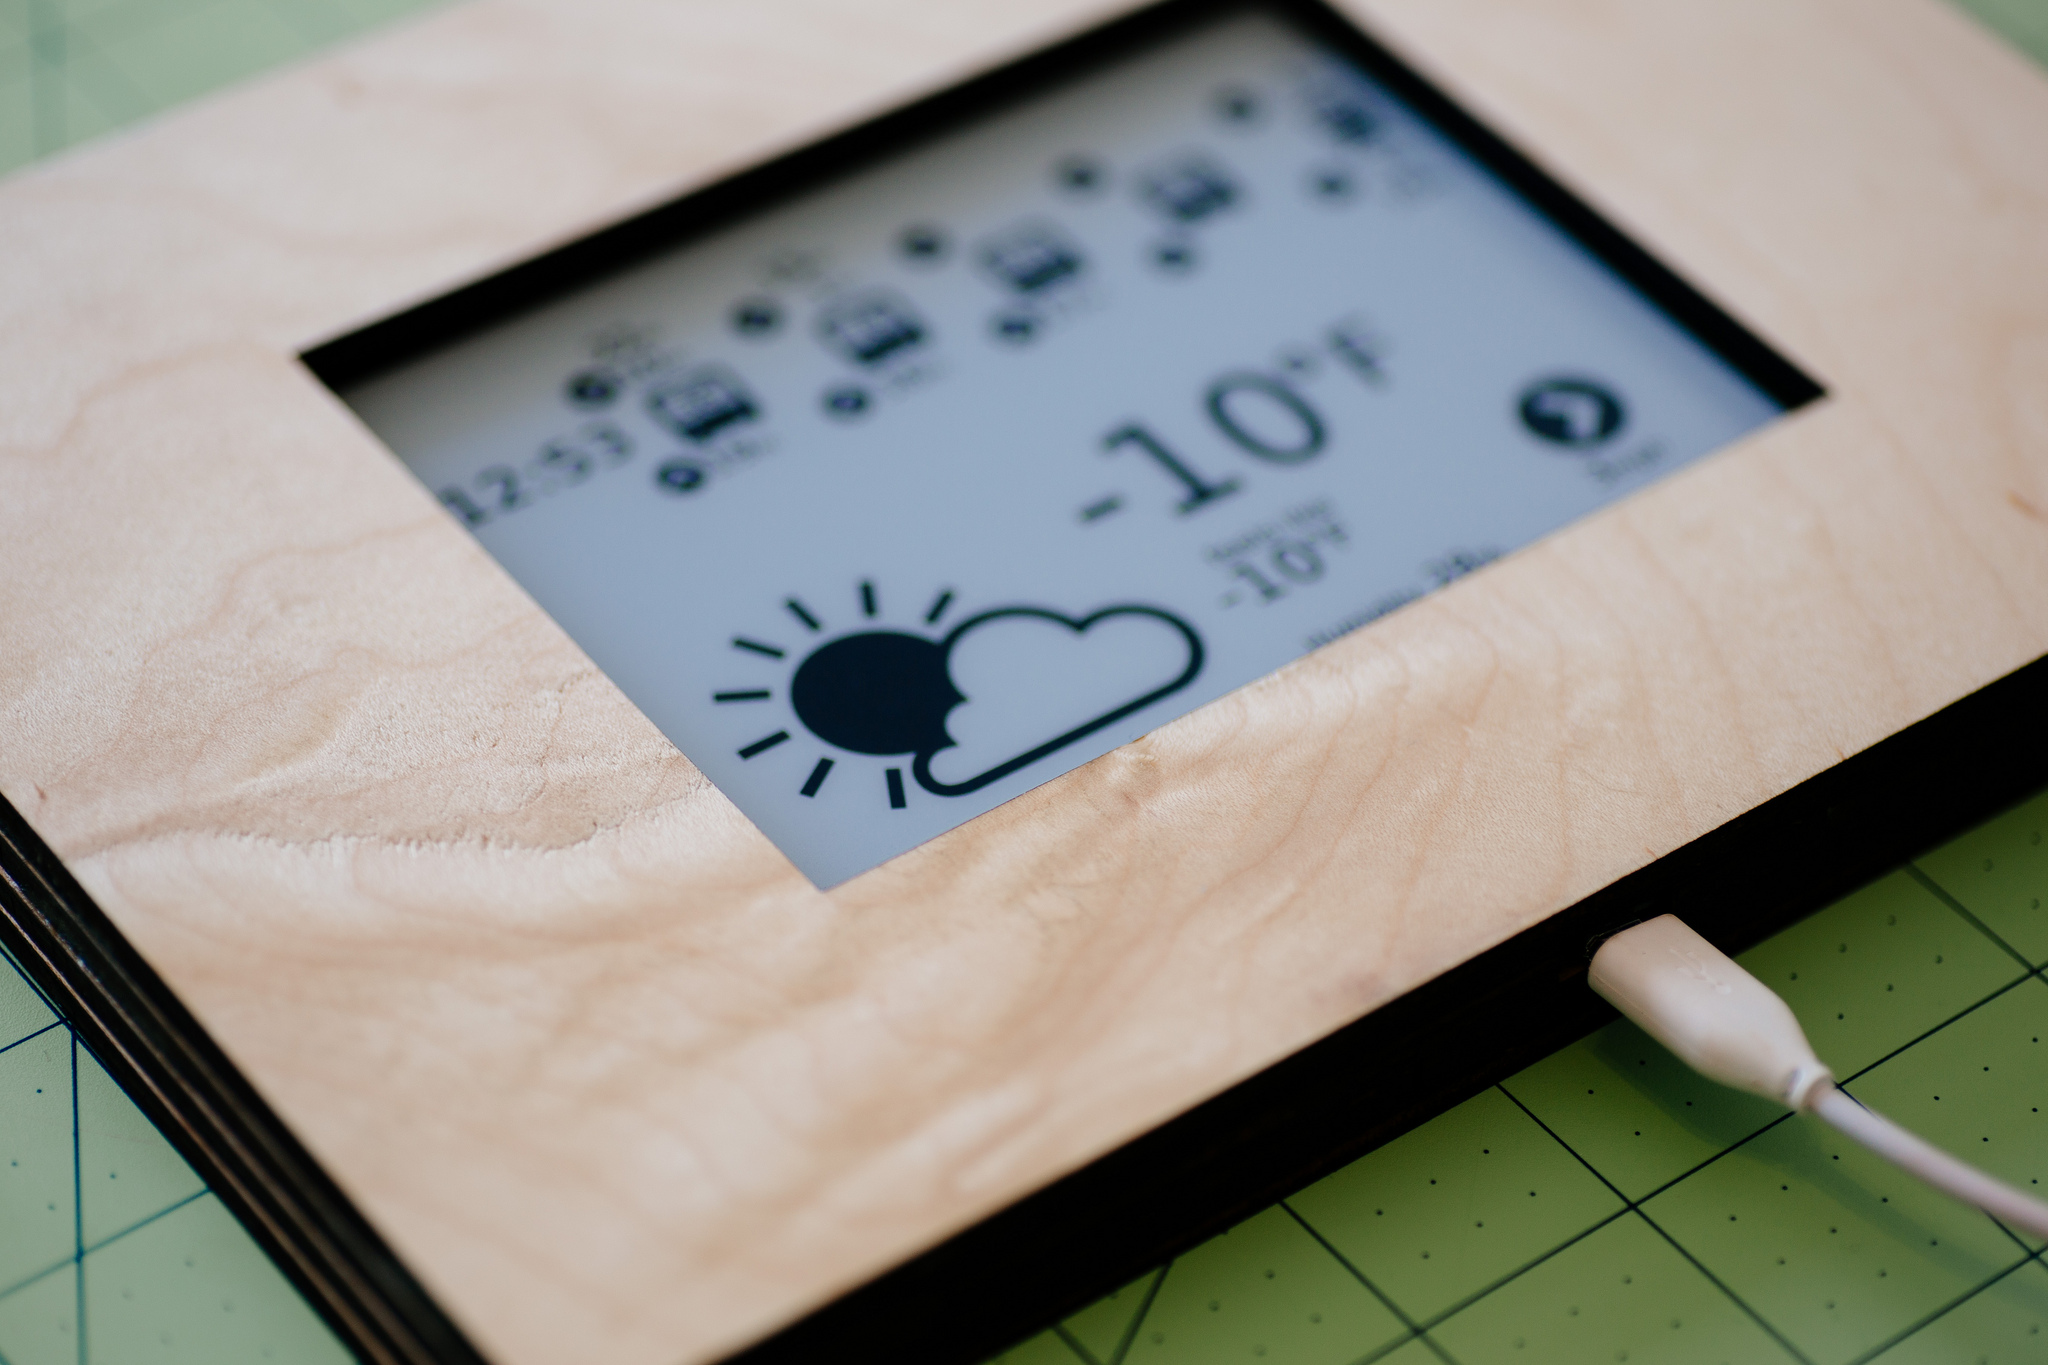 Image of the kindle weather and arrival times display, in a wood frame.